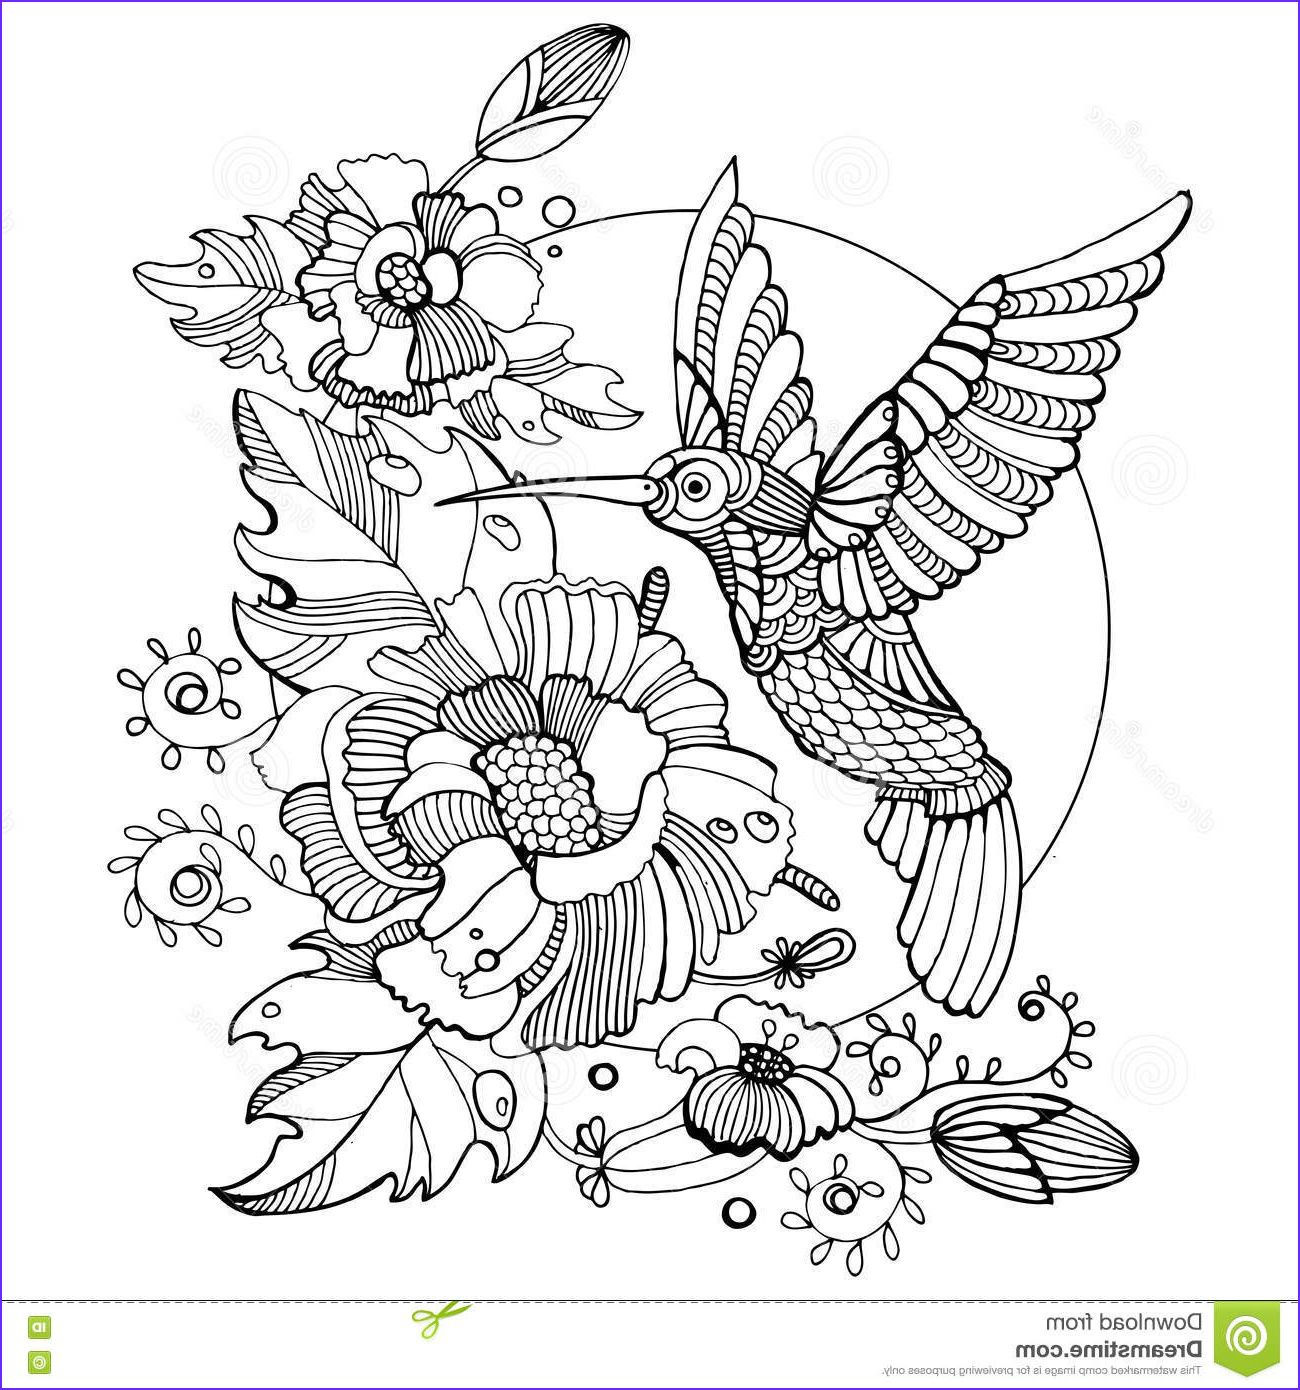 45 Elegant Images Of Hummingbird Coloring Pages For Adults Deer Coloring Pages Bird Coloring Pages Coloring Pages Nature